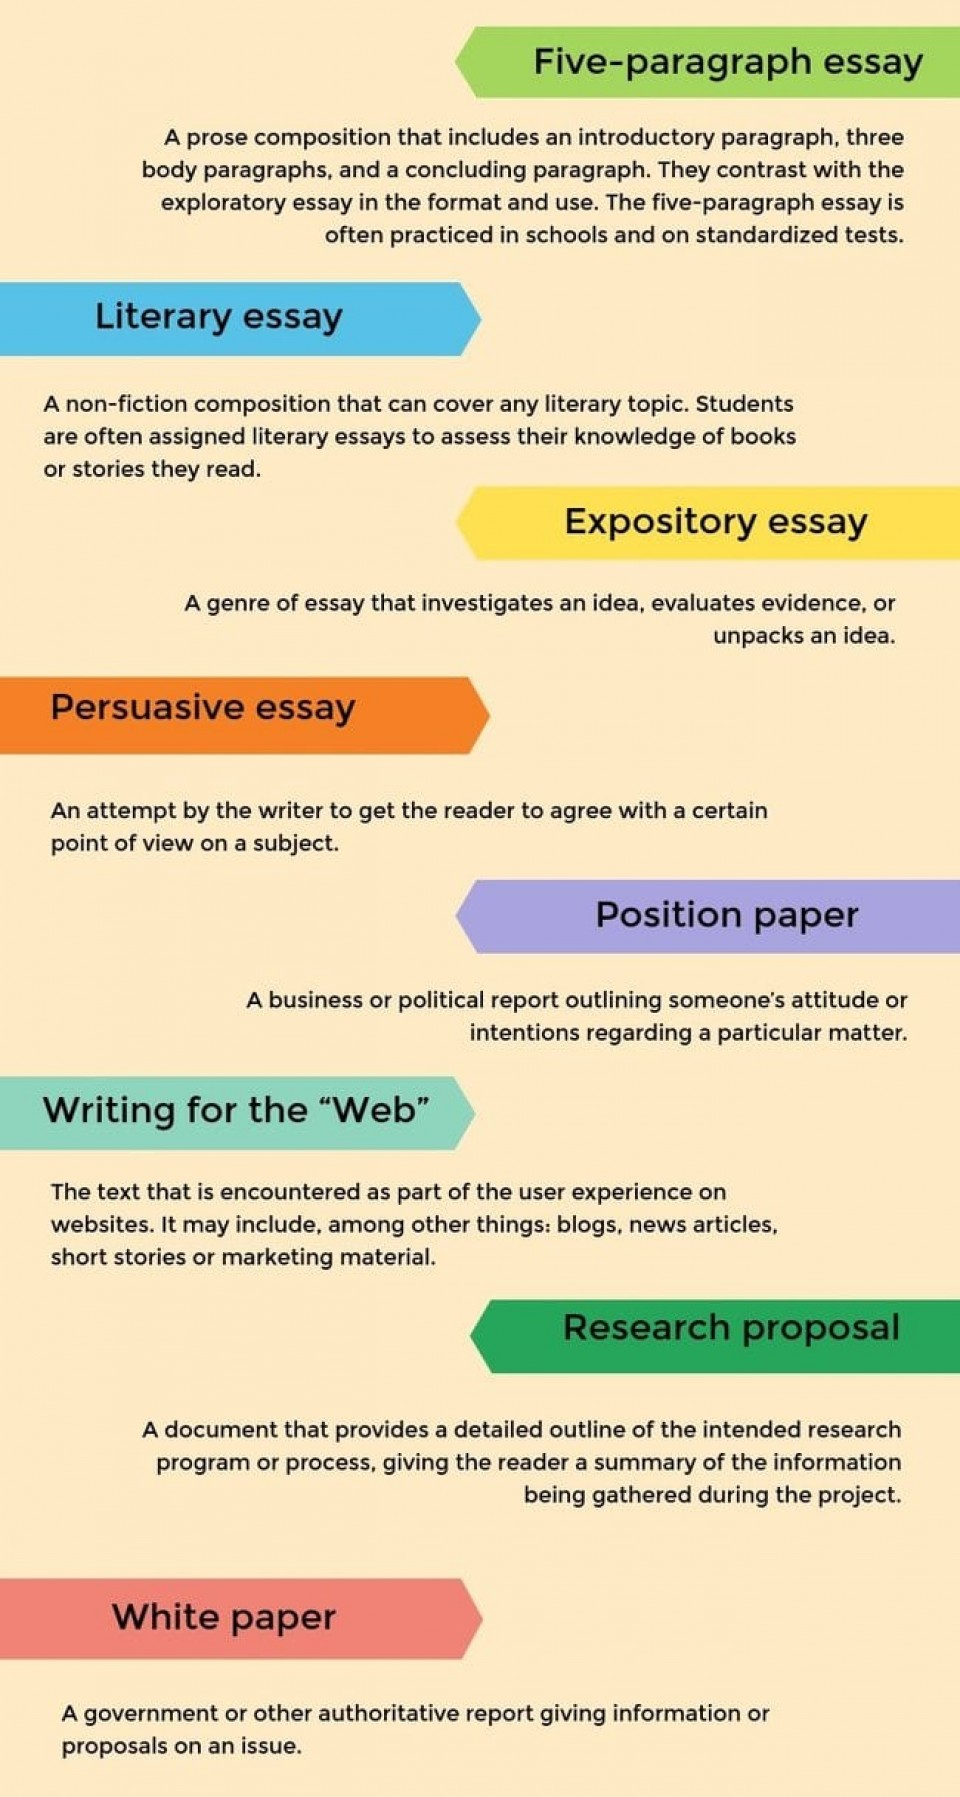 011 Oz Types Of Essays Essay Example Paragraph Best 5 Topics For High School Middle 960